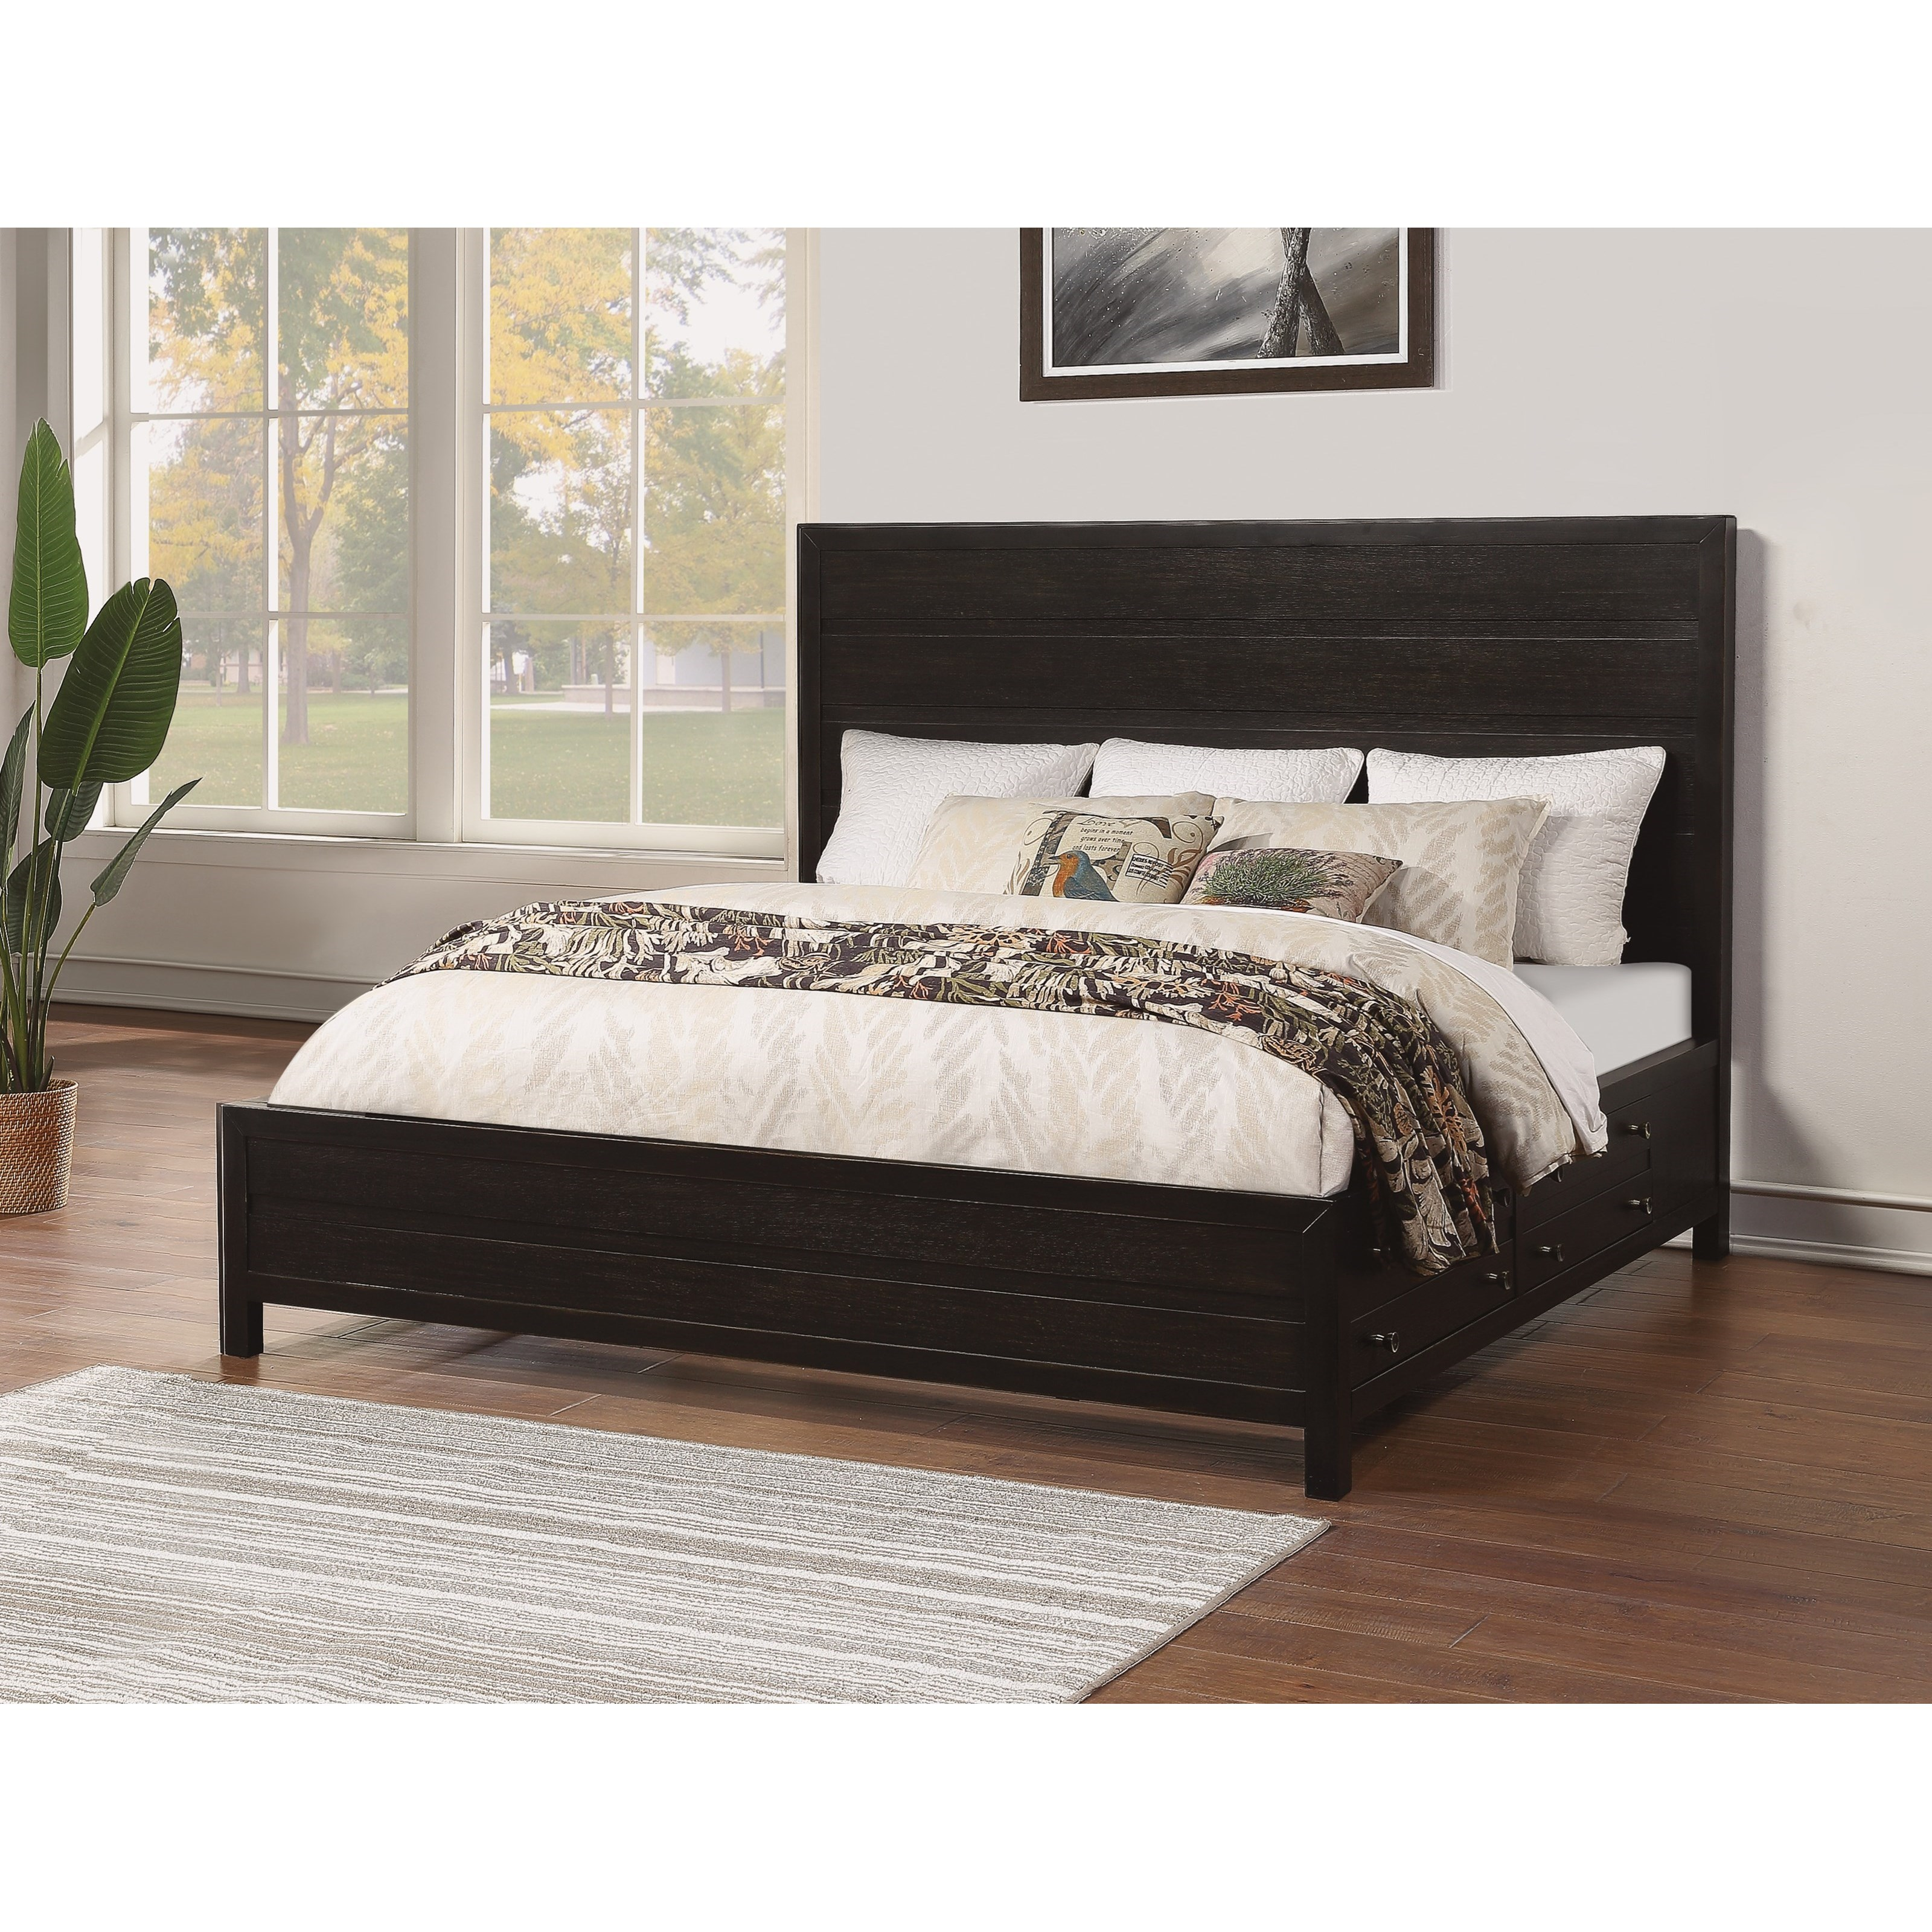 King Low Profile Storage Bed